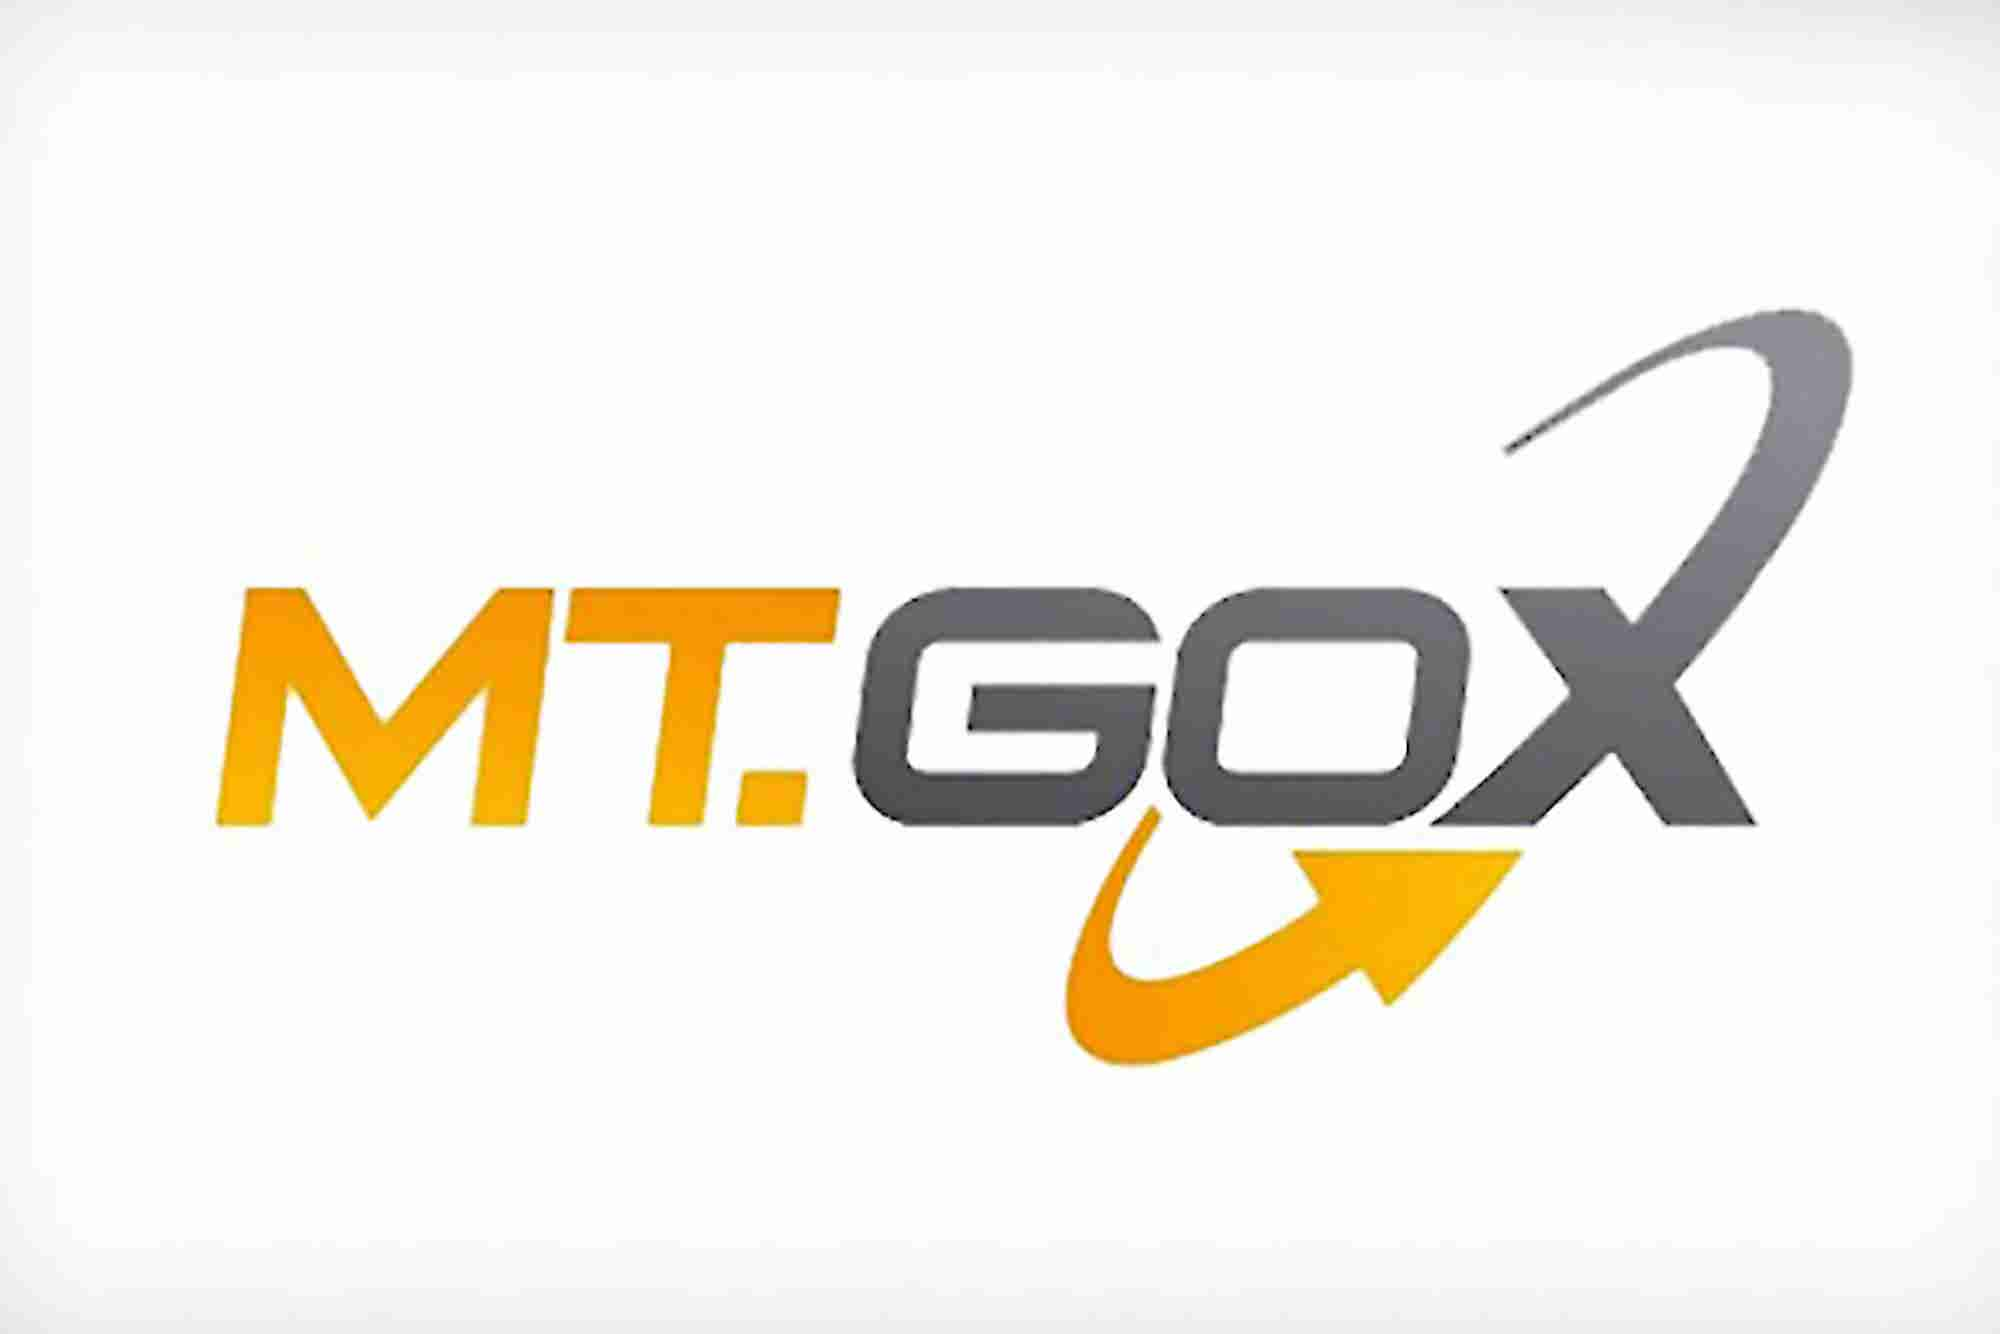 One-Time Bitcoin Exchange Giant Mt. Gox Collapses Amid Insolvency, Trading Allegedly Suspended